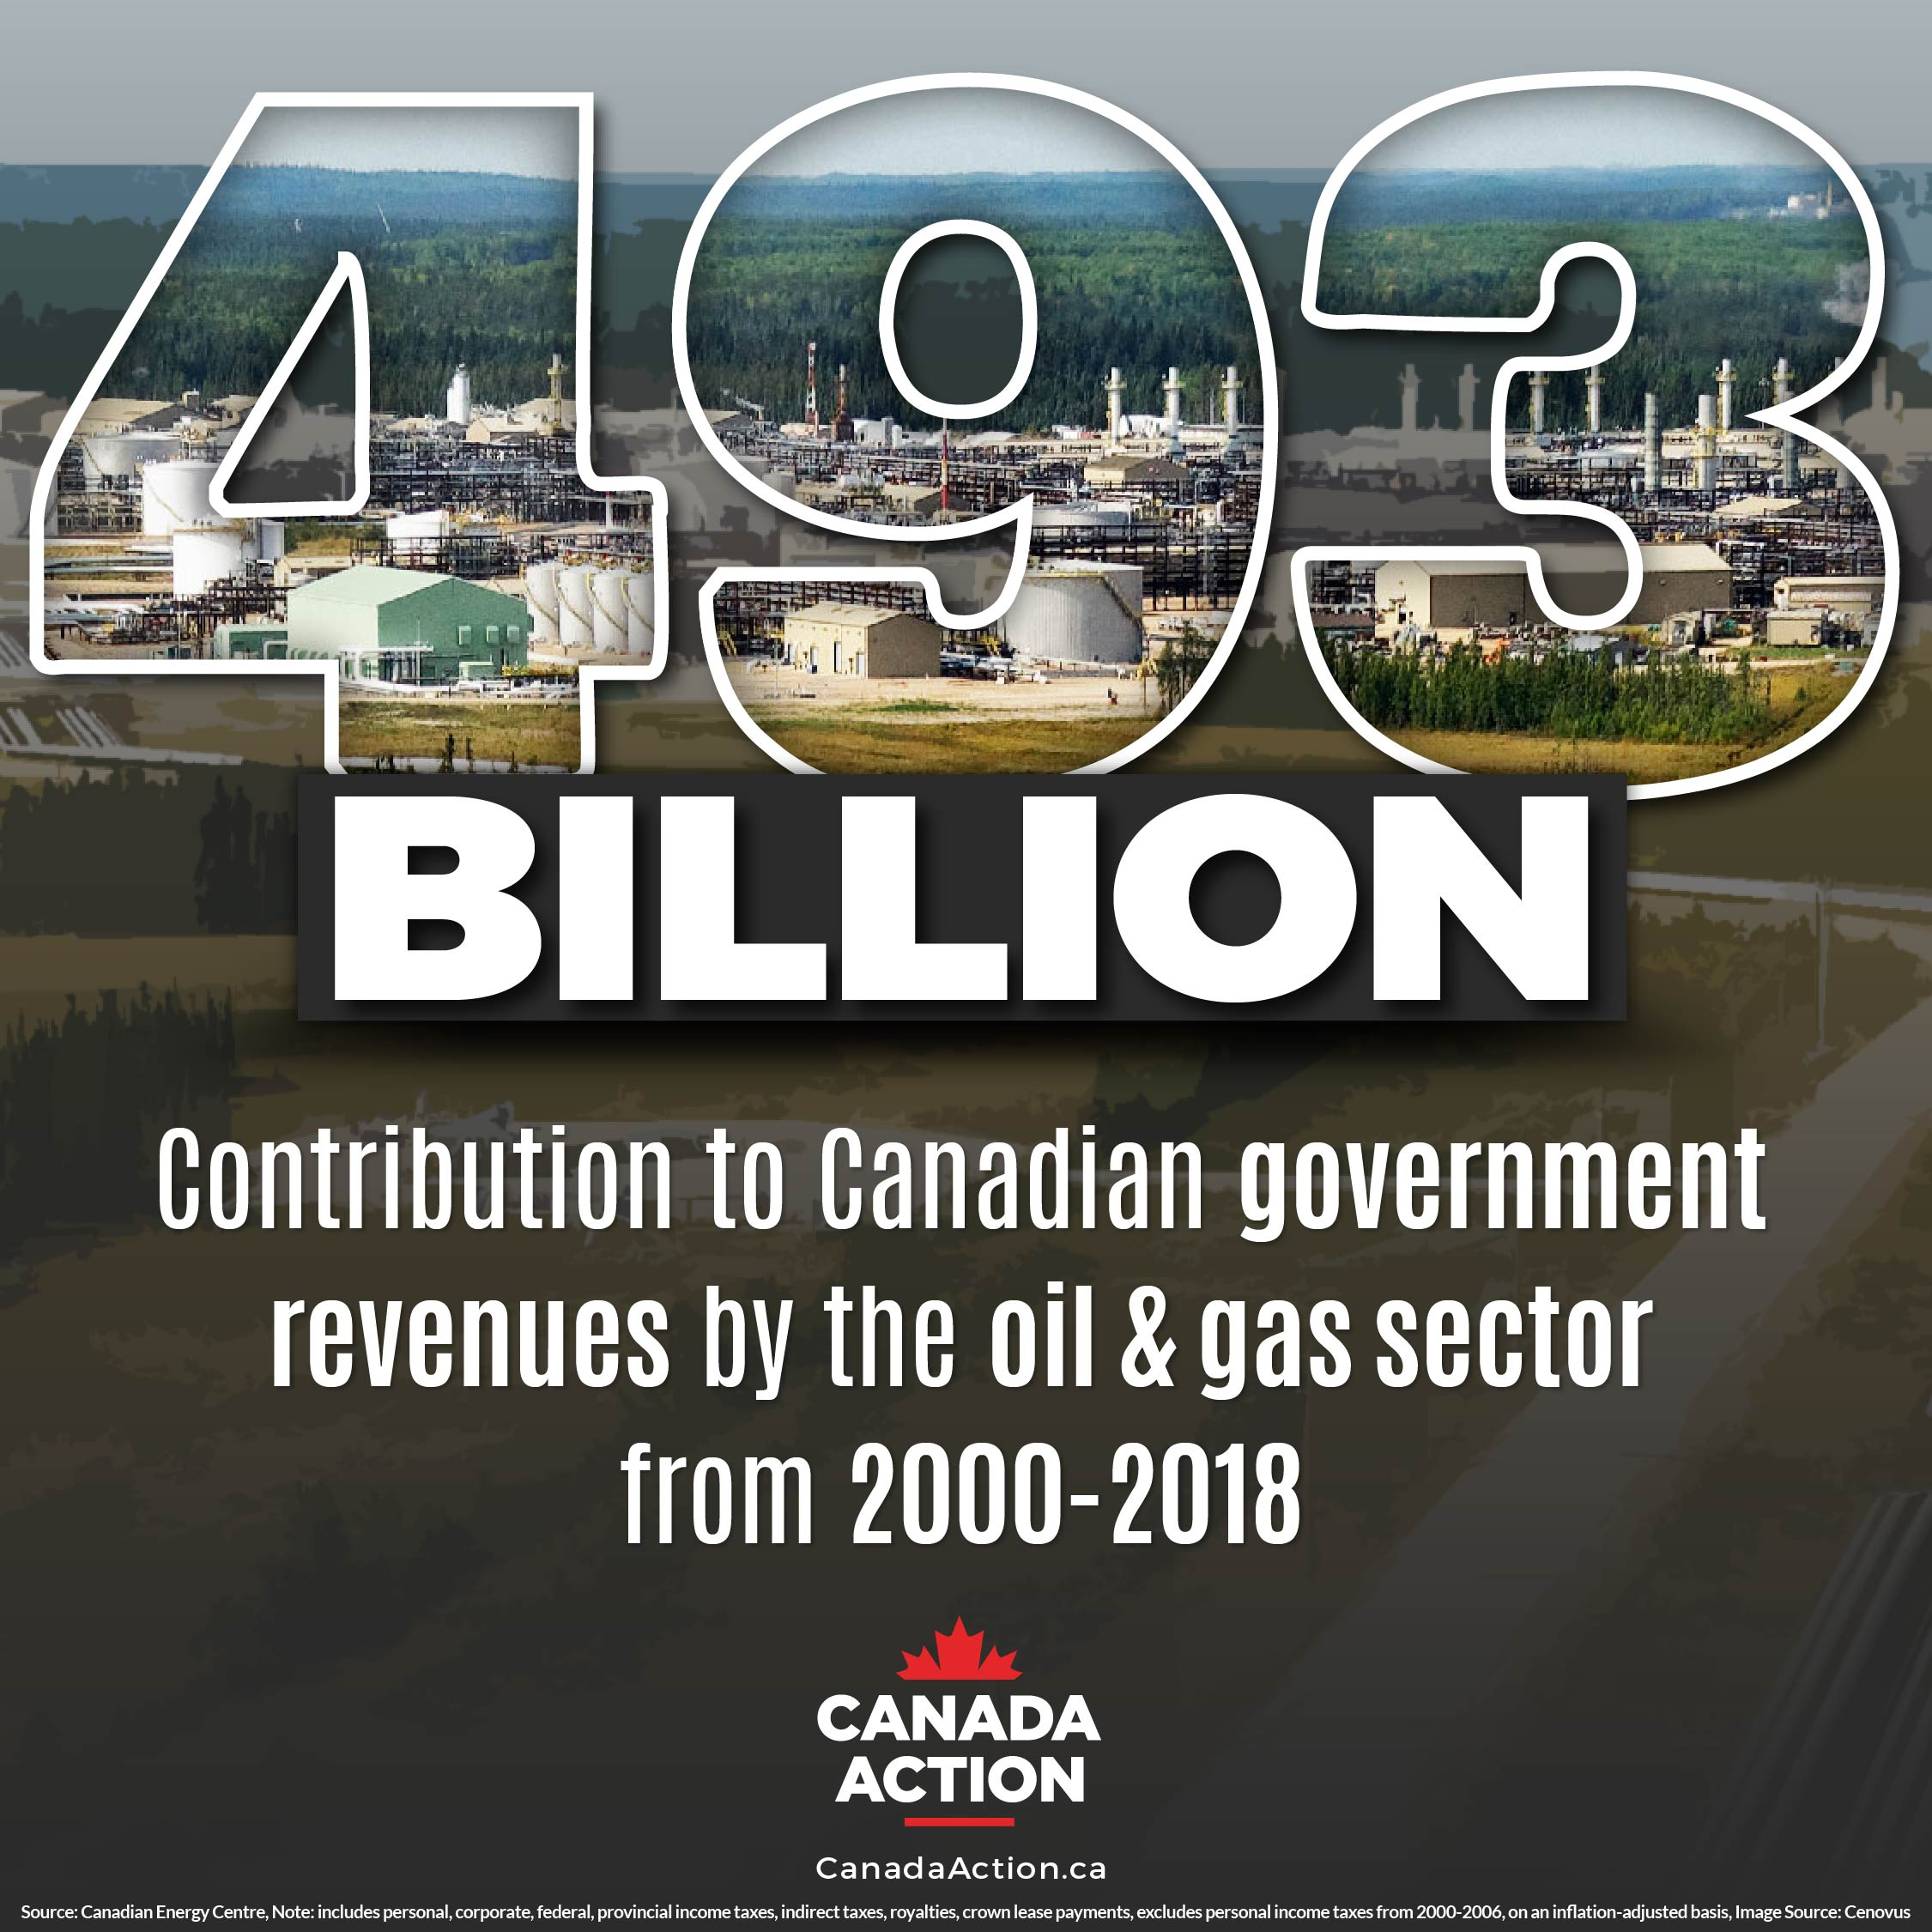 Canada Oil and Gas Sector Generated 493 Billion Government Revenues 2000-2018